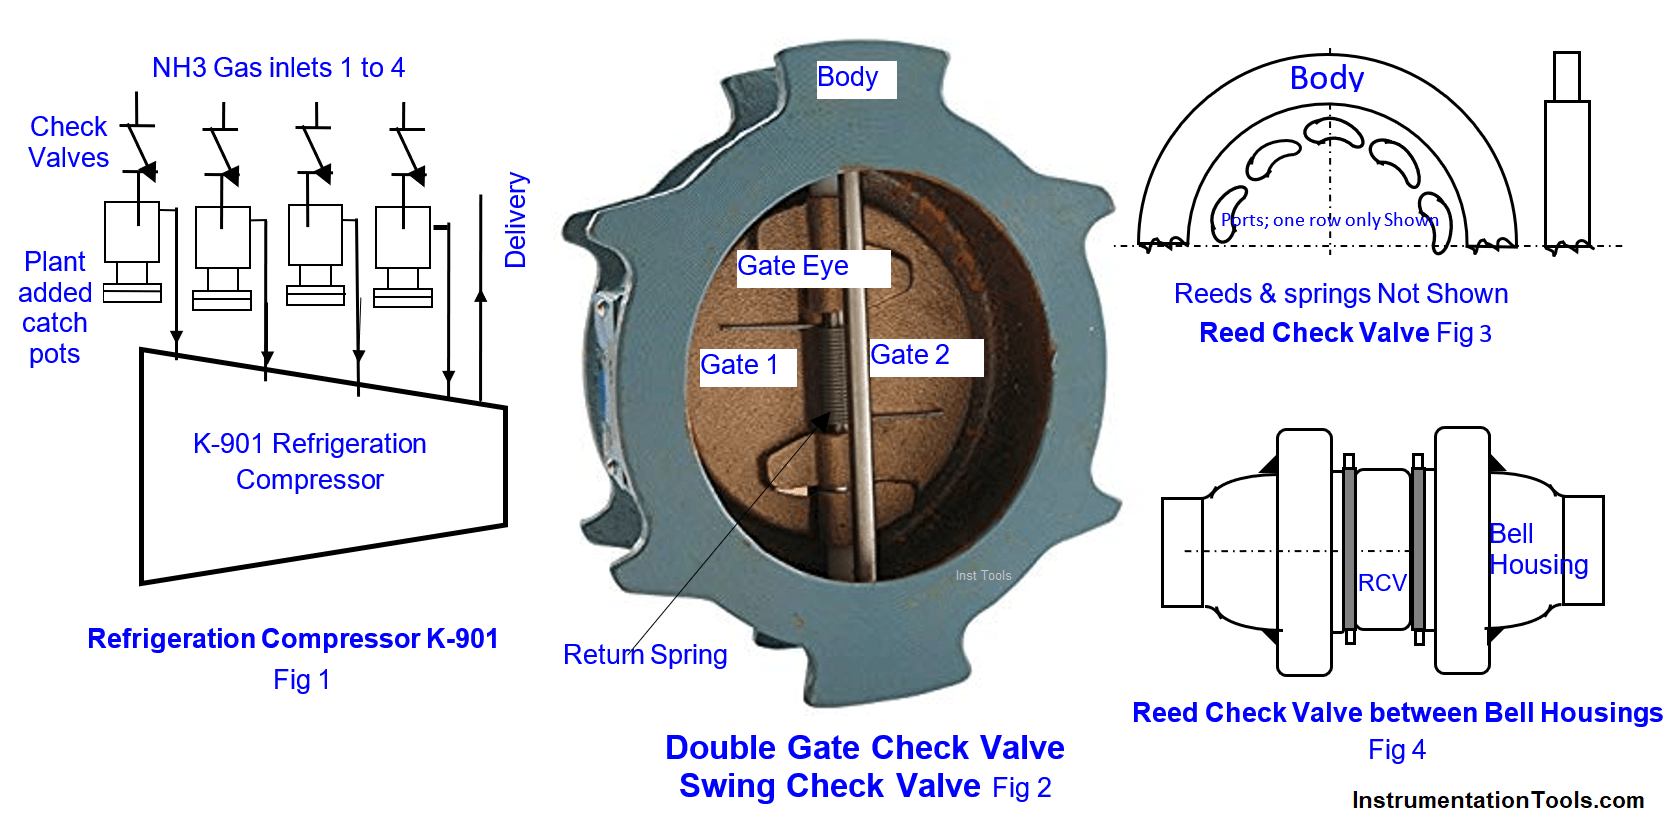 Malfunctioning Inlet Check Valves